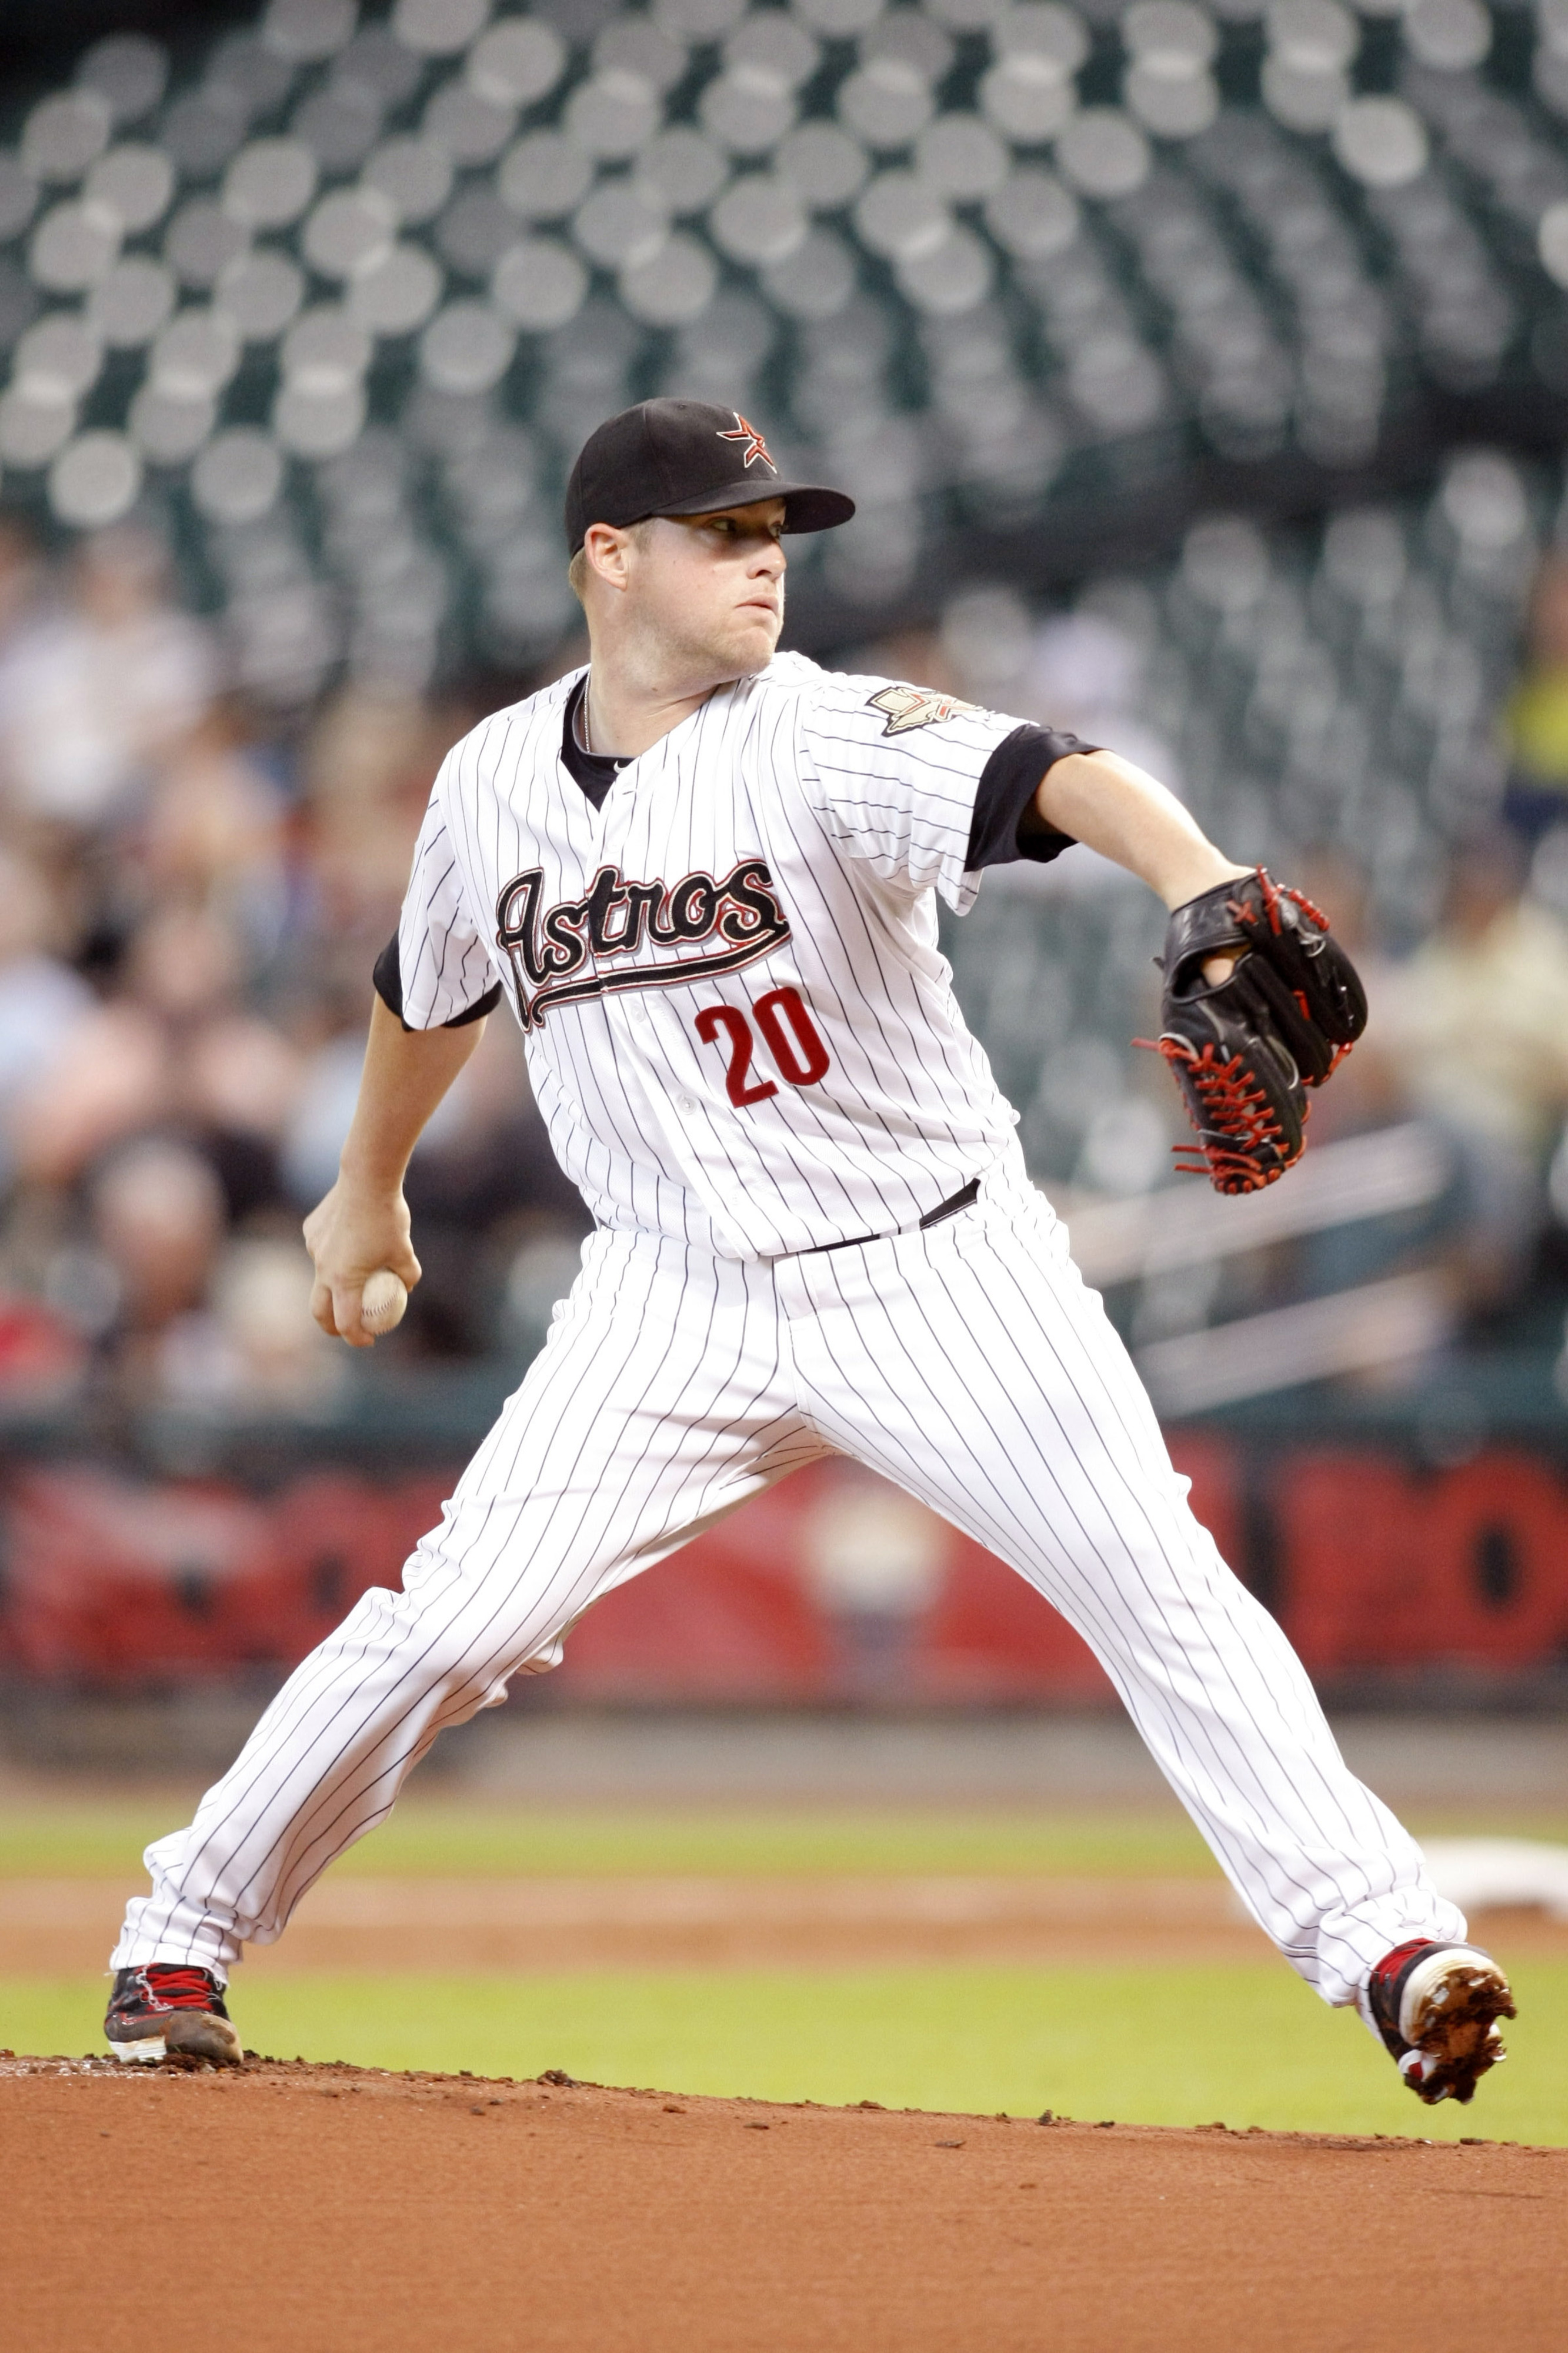 Aug 28, 2012; Houston, TX, USA; Houston Astros starting pitcher Bud Norris (20) throws a pitch against the San Francisco Giants in the first inning at Minute Maid Park. Mandatory Credit: Brett Davis-US PRESSWIRE